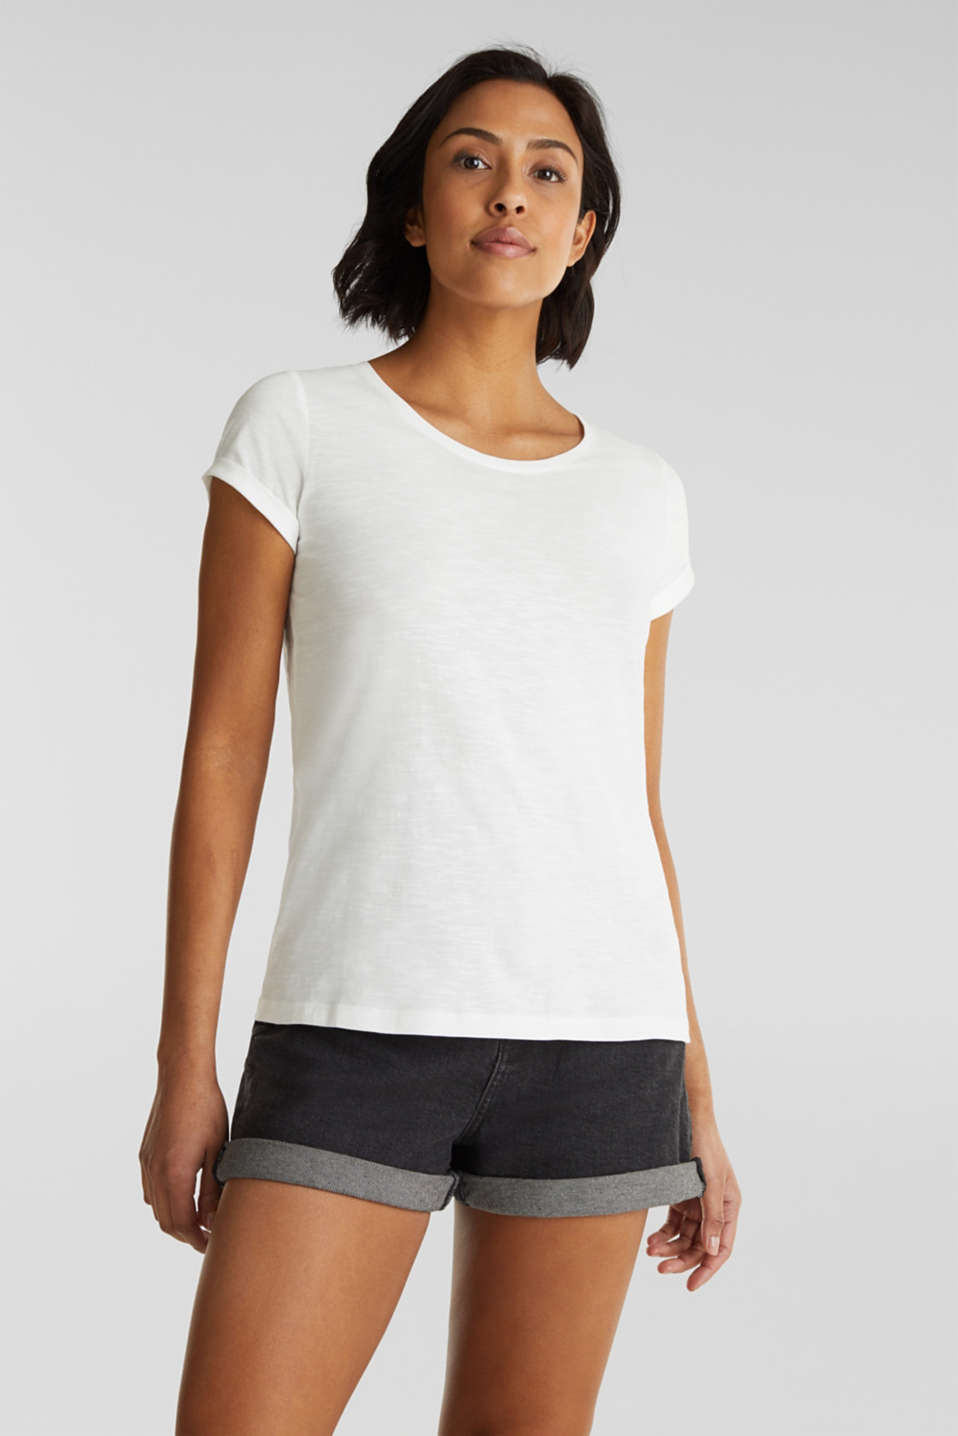 Top with a slub texture, 100% cotton